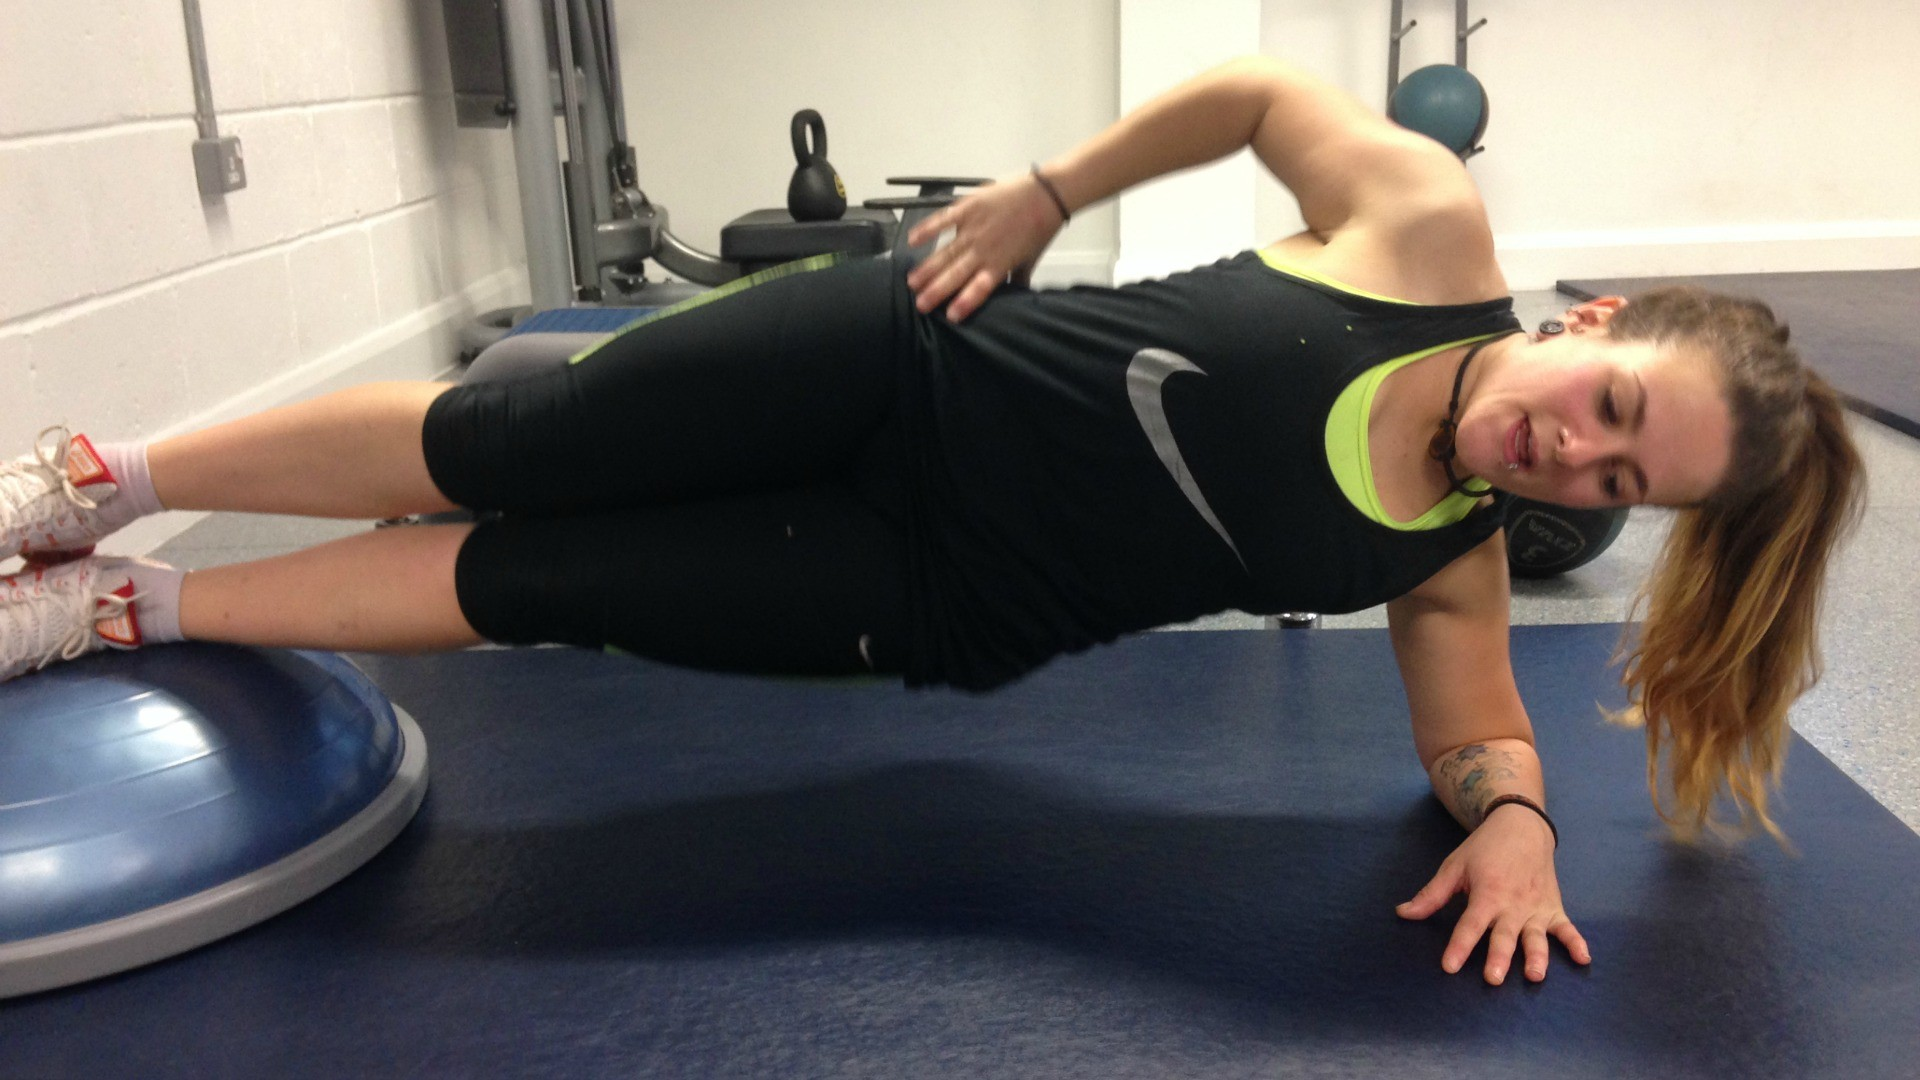 Side plank is a great exercise for upping your core strength